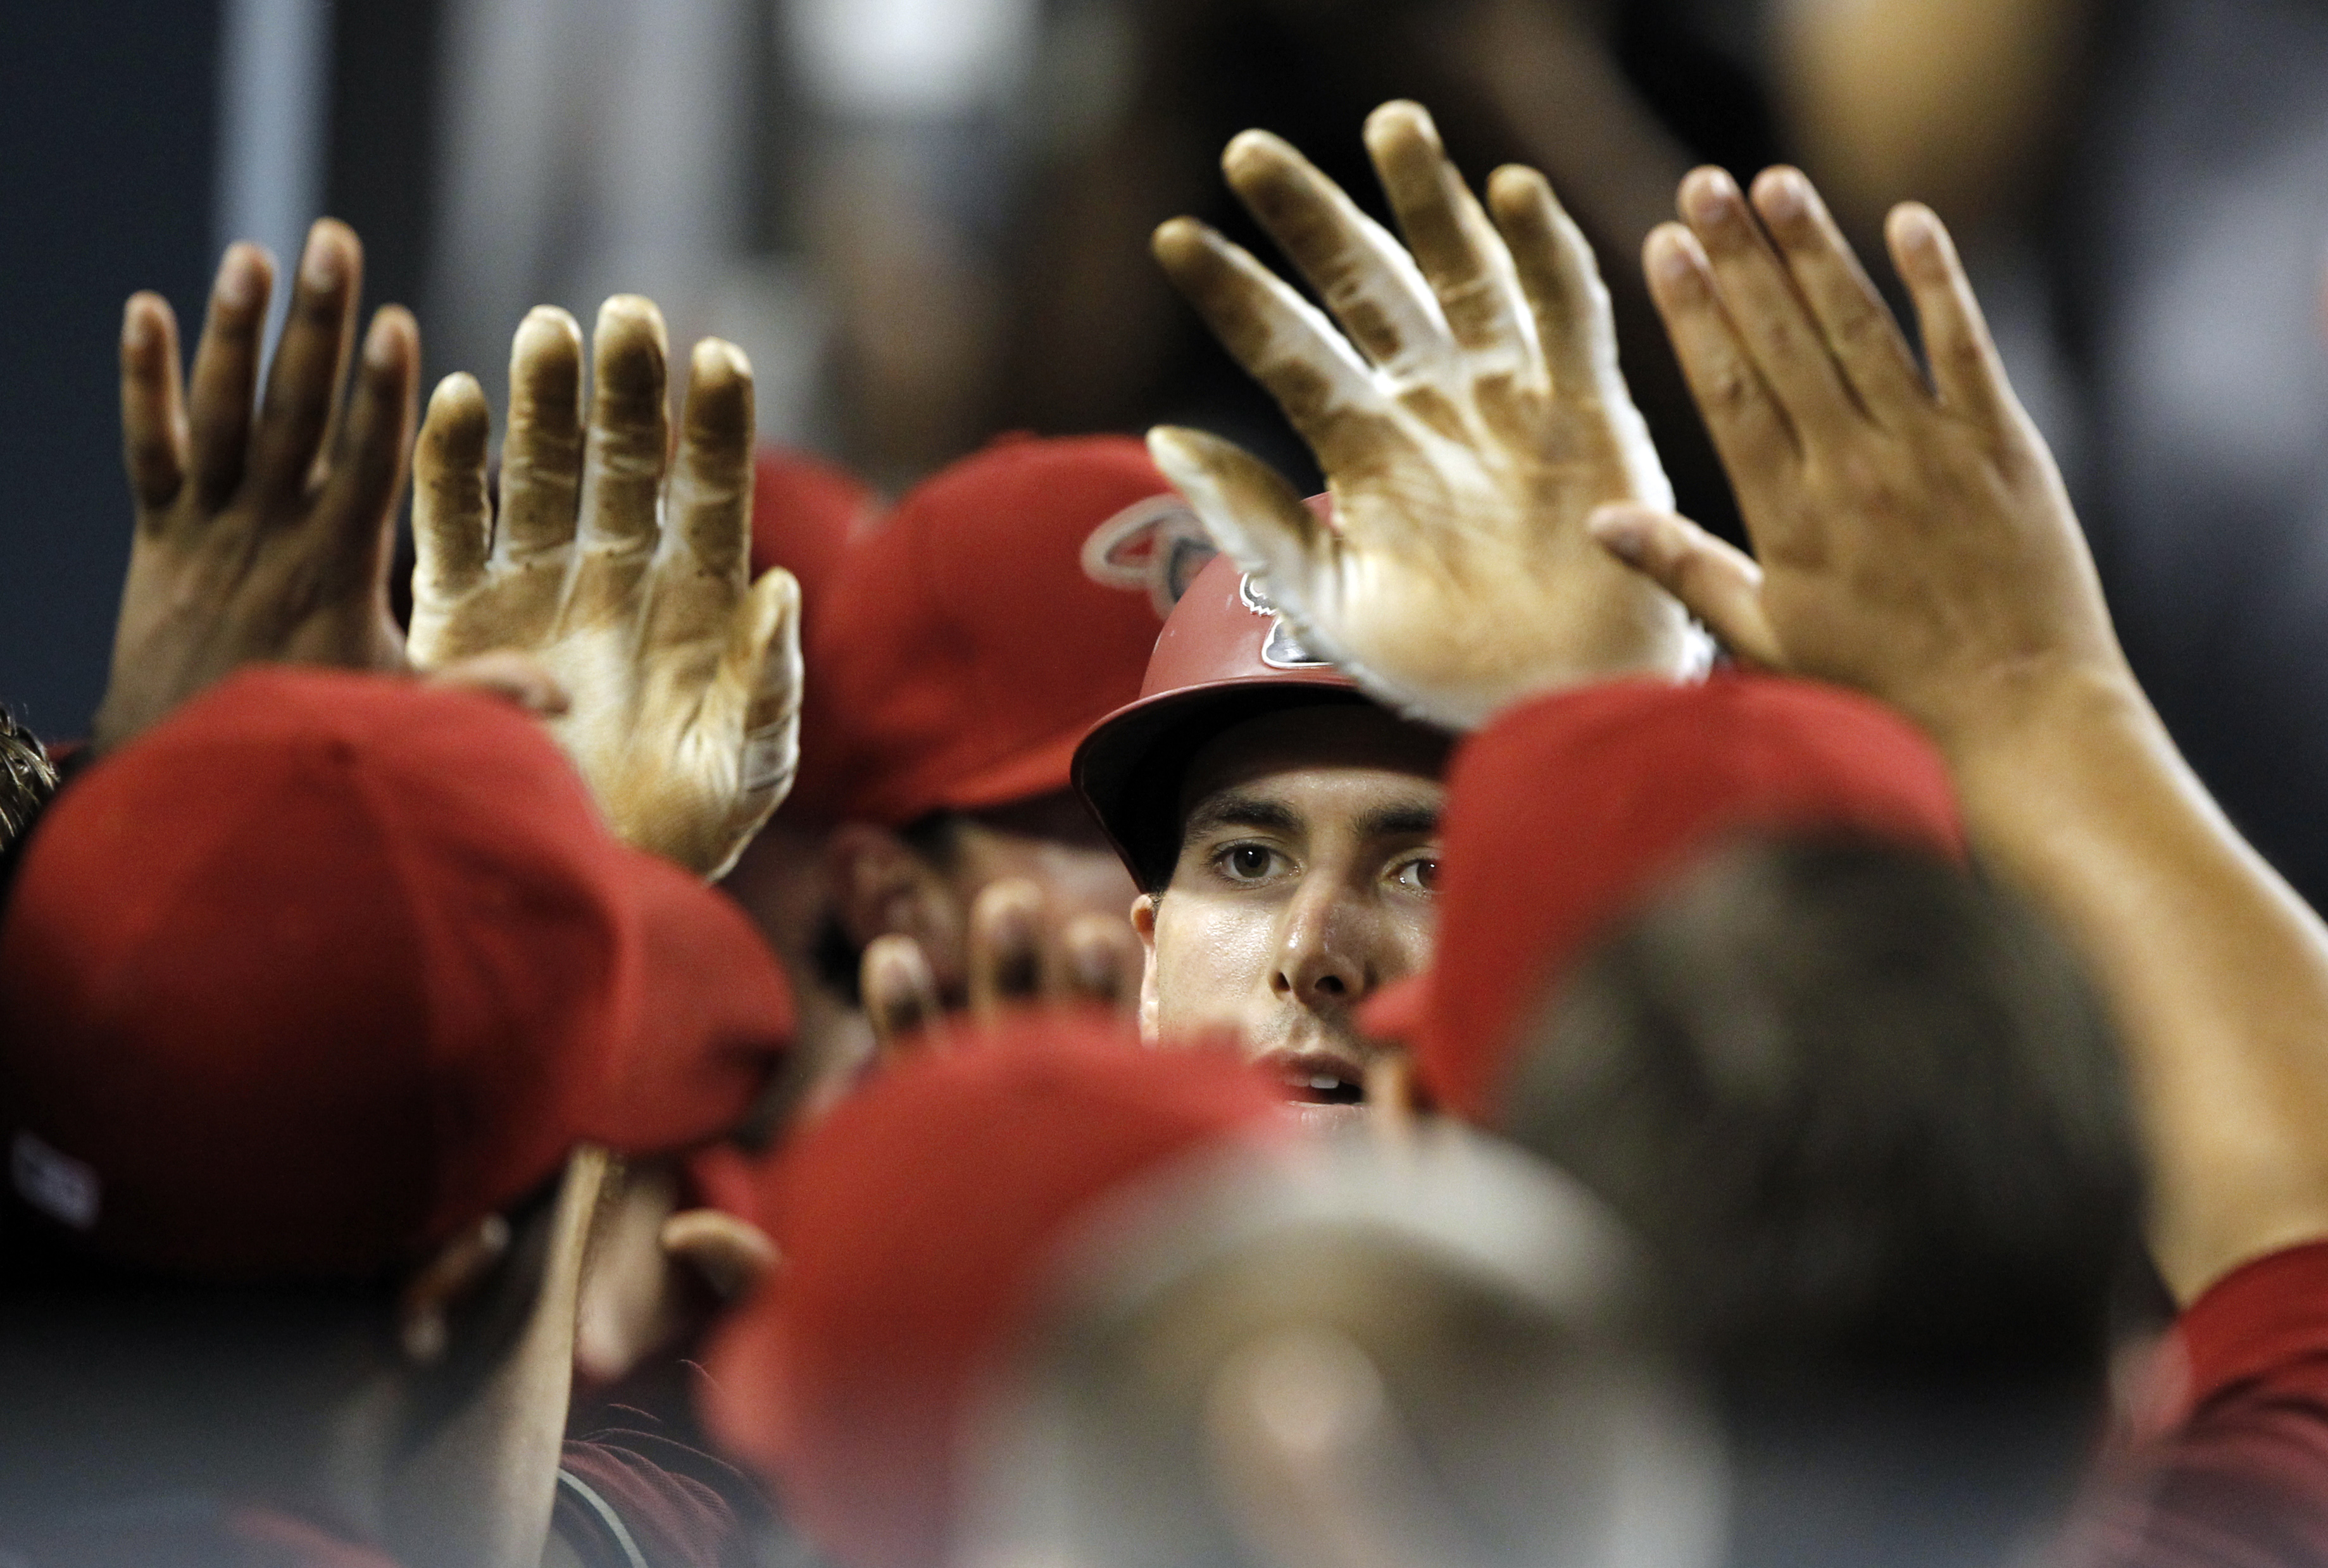 Arizona Diamondbacks' Paul Goldschmidt, center, gets congratulations from teammates after hitting a solo home run against the Los Angeles Dodgers during the second inning of a baseball game in Los Angeles, Wednesday, Sept. 23, 2015. (AP Photo/Alex Gallard